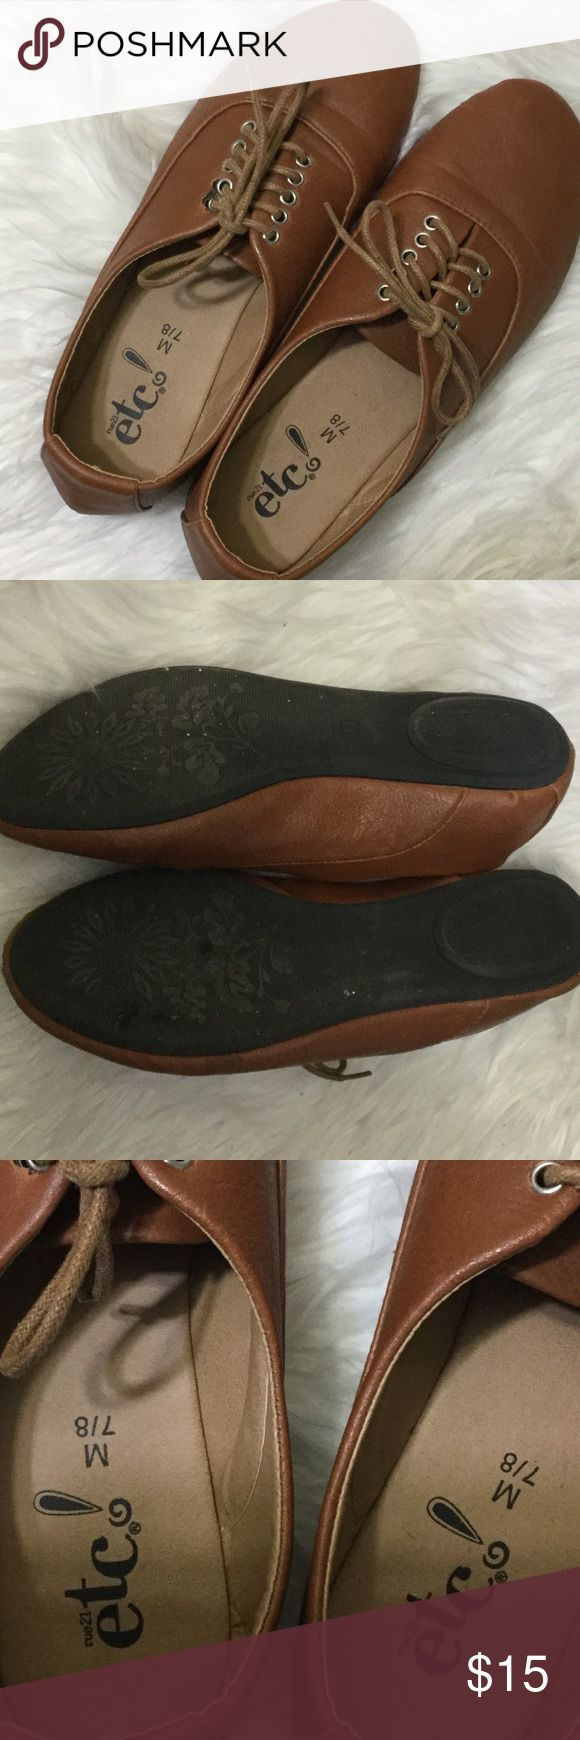 """✂️price drop✂️ Brown Casual Shoes A pair of brown lace up casual semi-dressy shoes. Brand is: """"etc!"""" Size is: 7/8 NOTE: in my opinion these fit more like an eight than a seven. I wear size seven and these are too big.  Posh rules only No paypal No lowballing  Price firm unless bundled.  I'm a suggested user and party host, posh ambassador, posh mentor, and I'm five star rated so buy with confidence!  H A P P Y  P O S H I N G  ⭐️✨⭐️✨⭐️✨😃✨⭐️✨⭐️✨⭐️ etc! Shoes Flats & Loafers"""